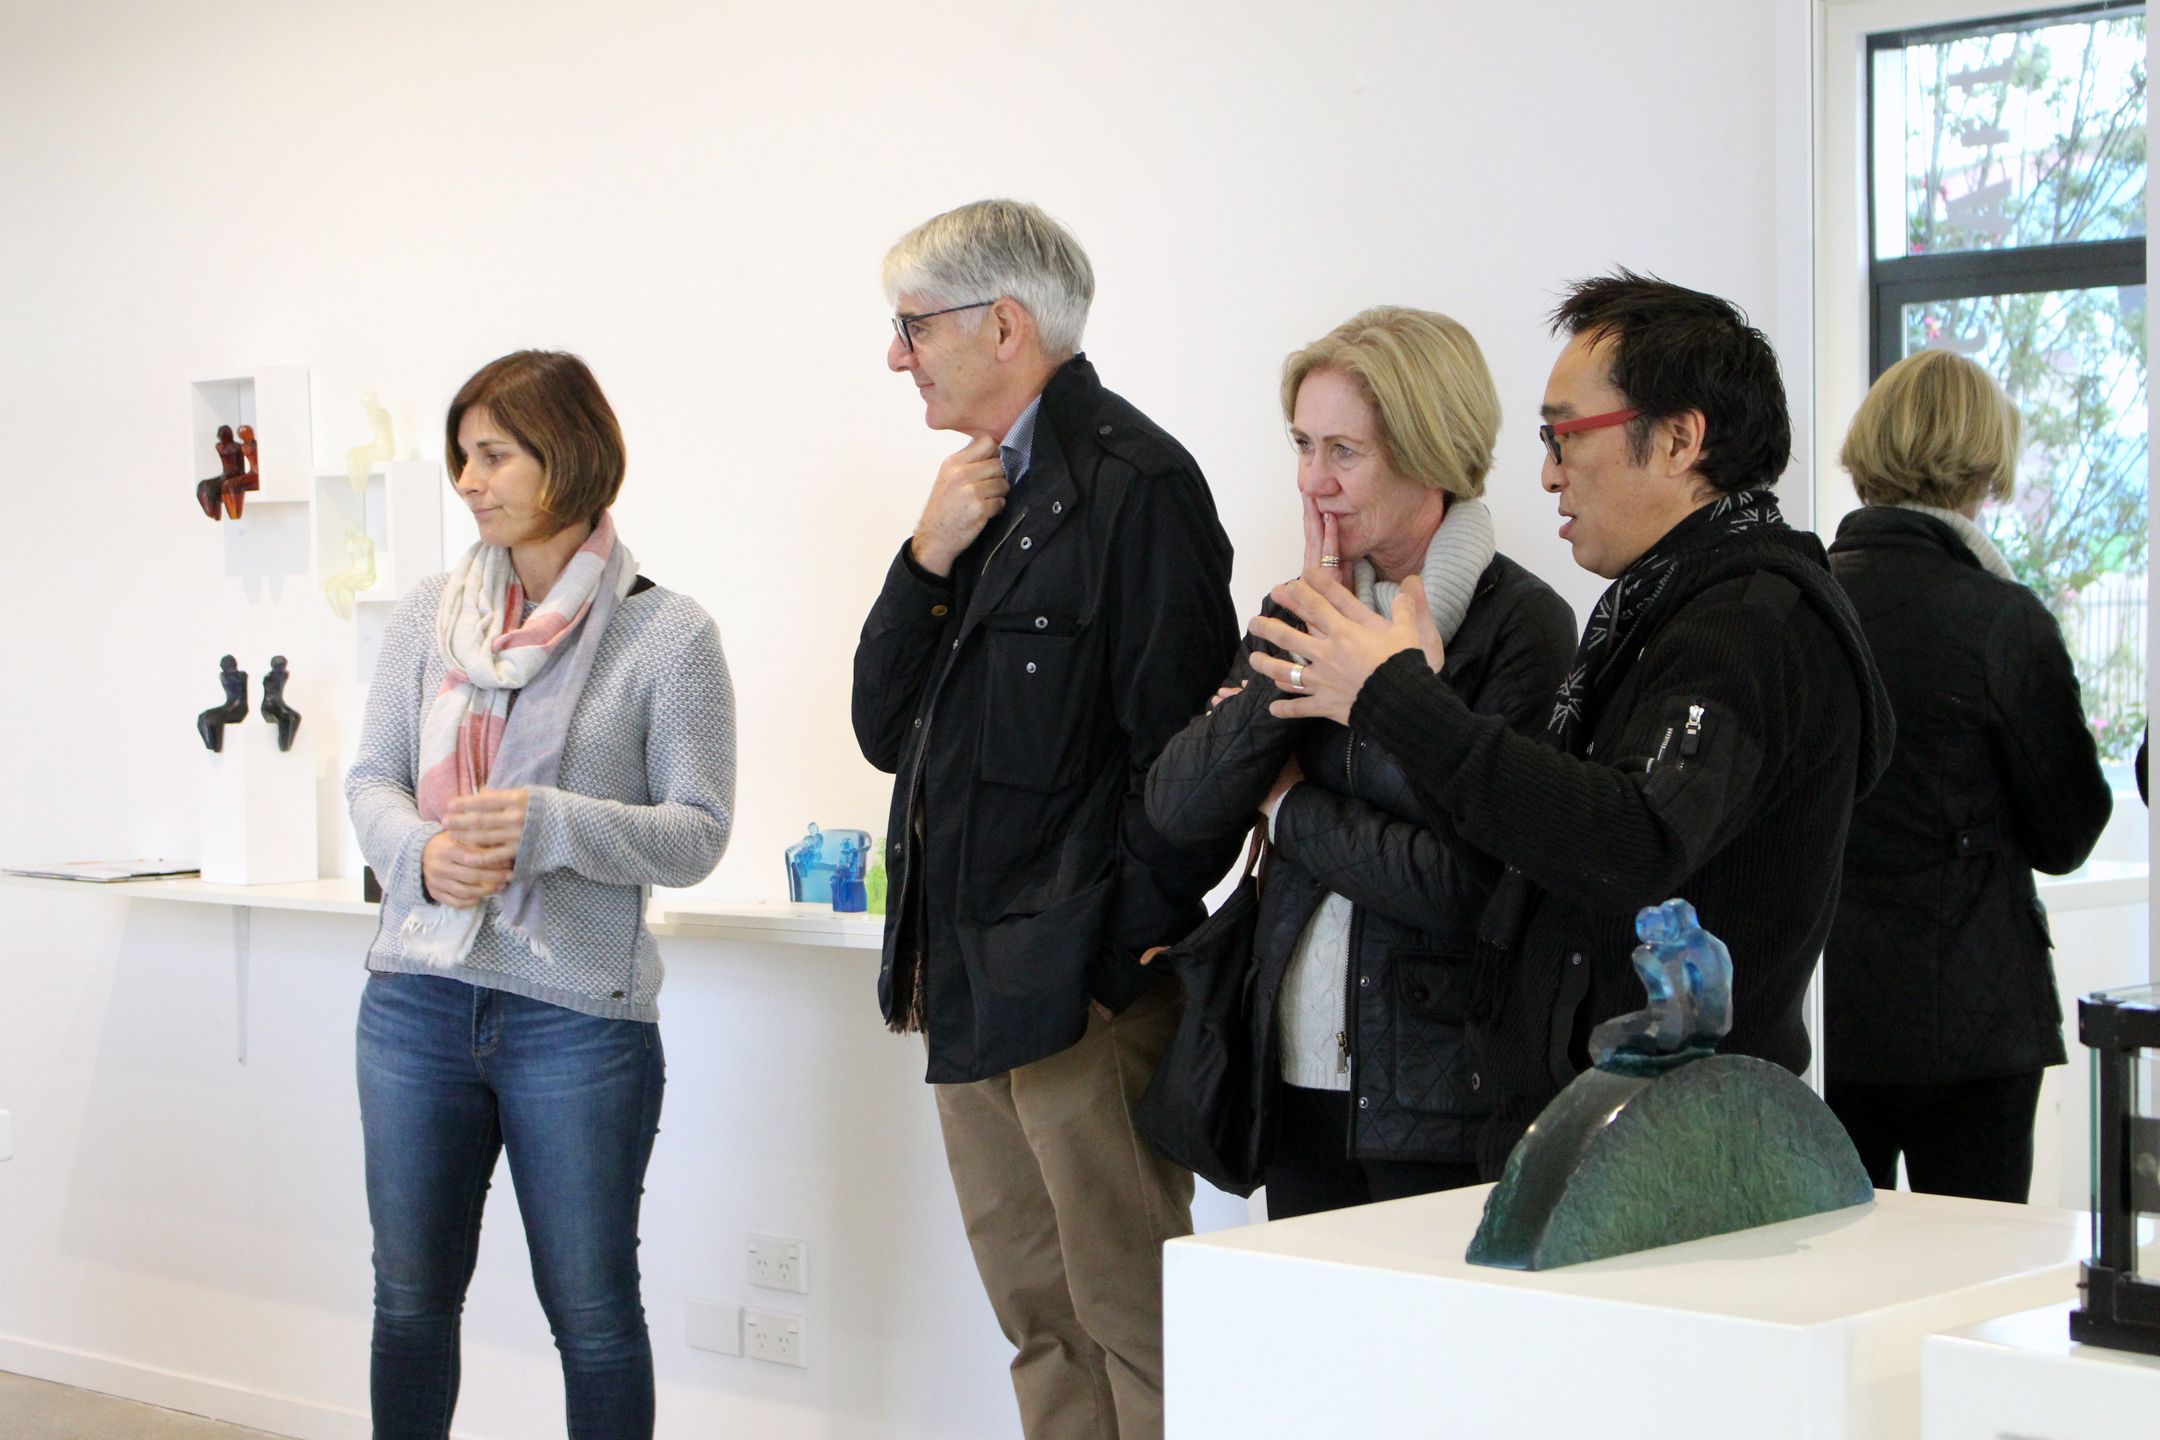 Visitors have been had the opportunity to talk to the artist herself about the glass sculpture process and themes.